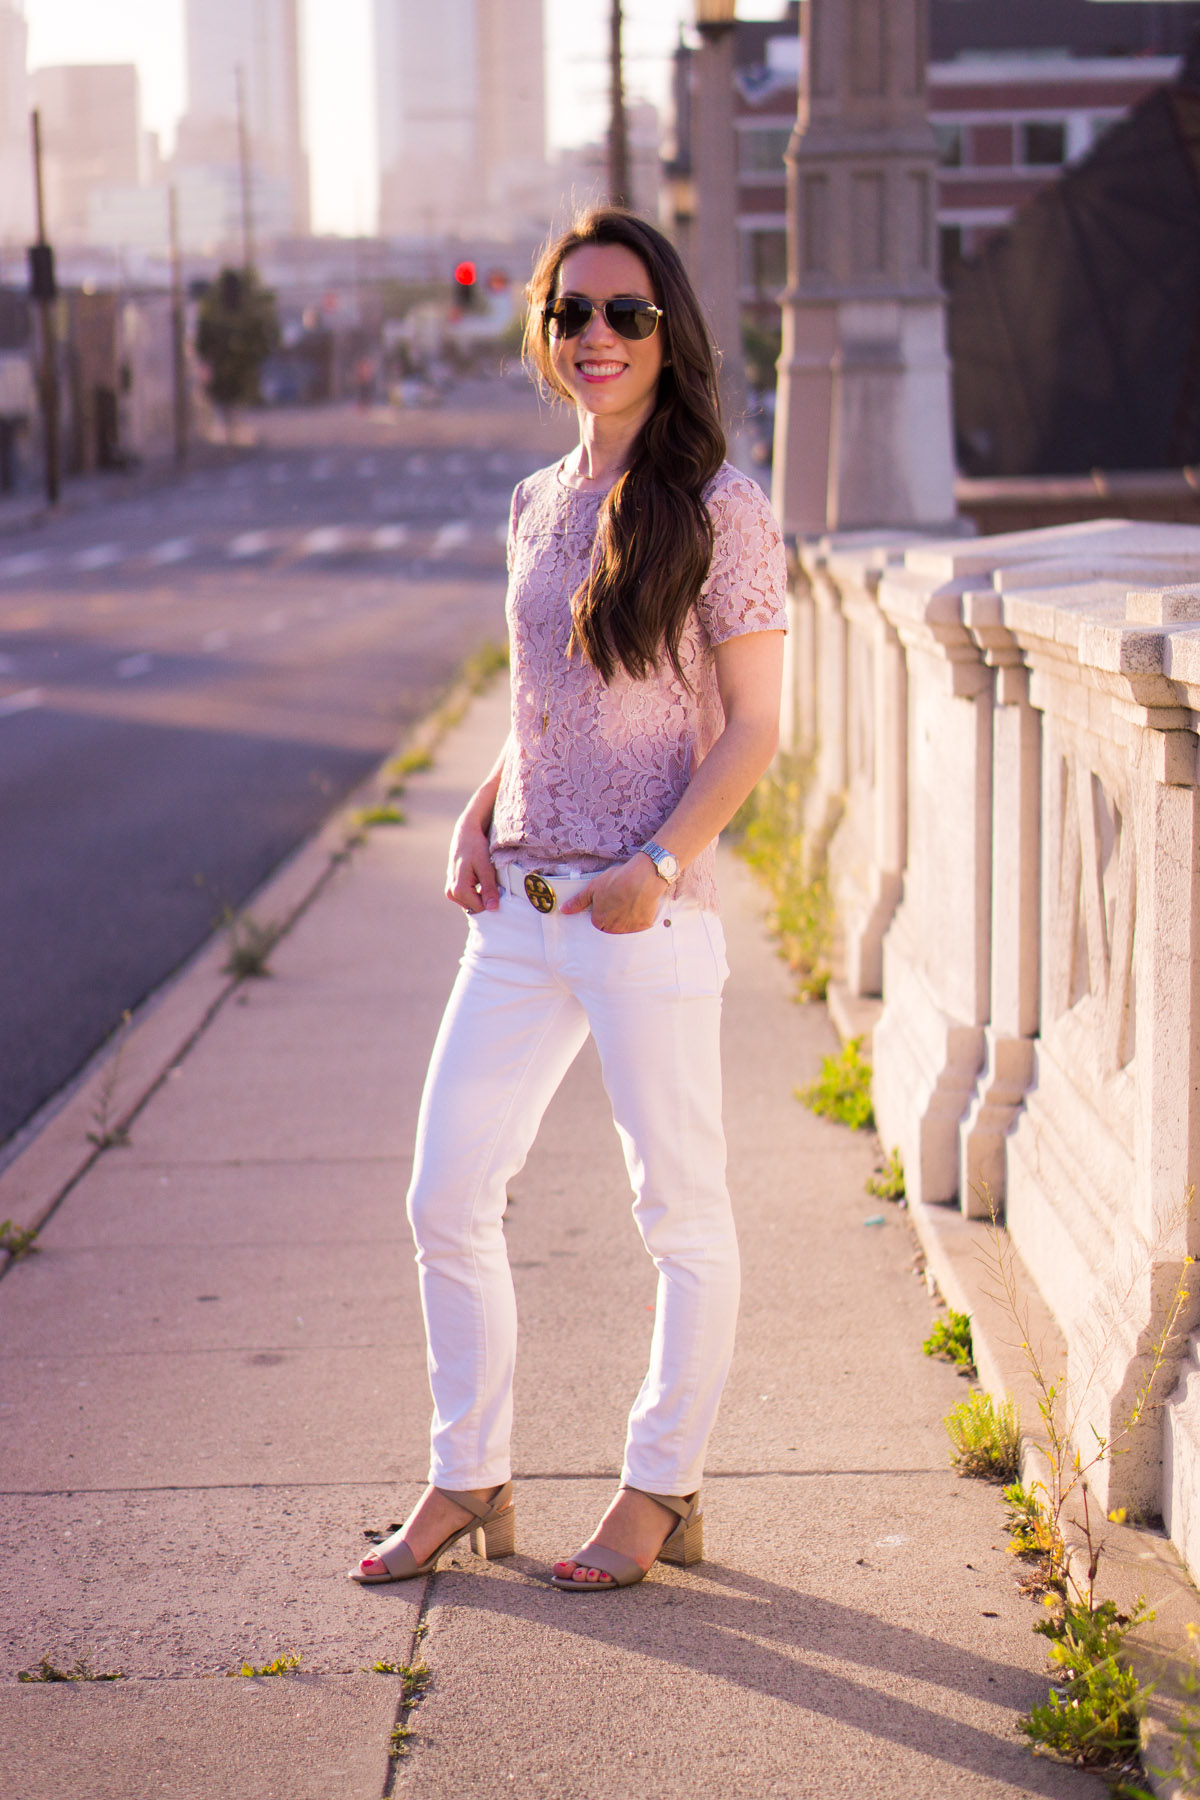 Lace tops are wardrobe essentials | Best Lace Tops | 5 Reasons to Wear Lace Tops | Petite Fashion & style | Why I love lace | Ann Taylor lace tee top | LOFT lace | Loft camisole | clean cami | Tory Burch logo belt | Paige white denim